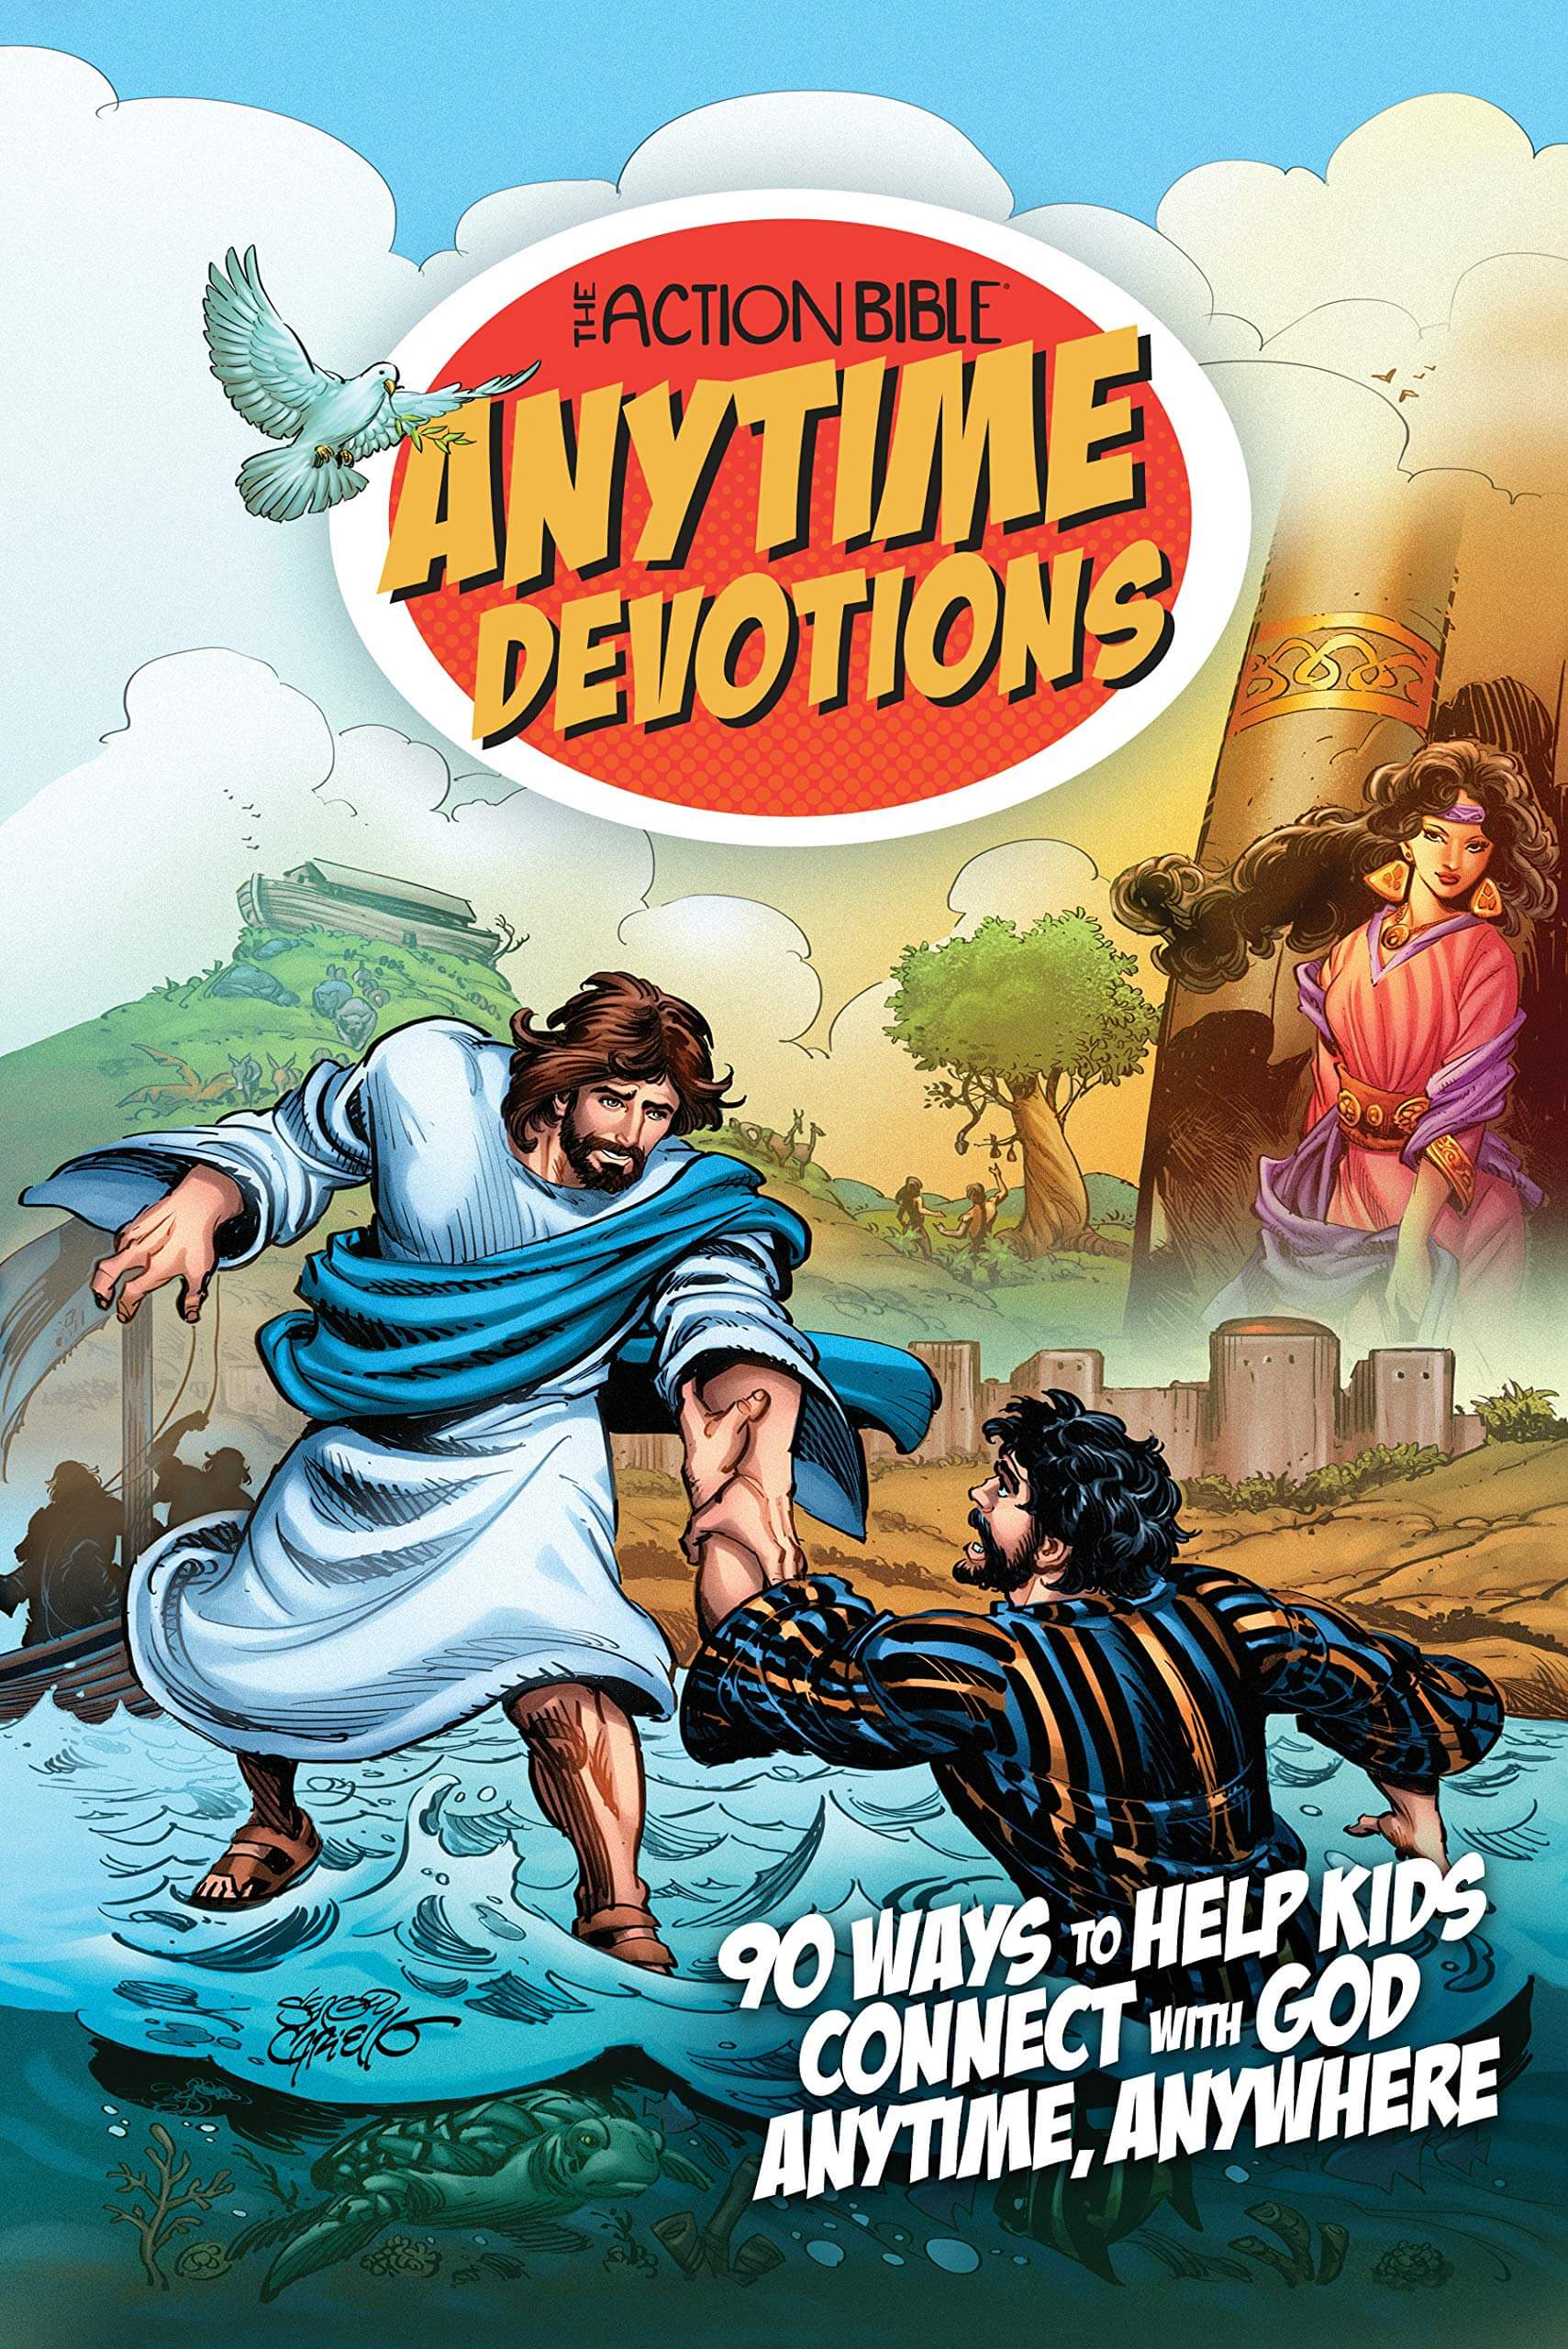 Action Bible Anytime Devotions for Kids